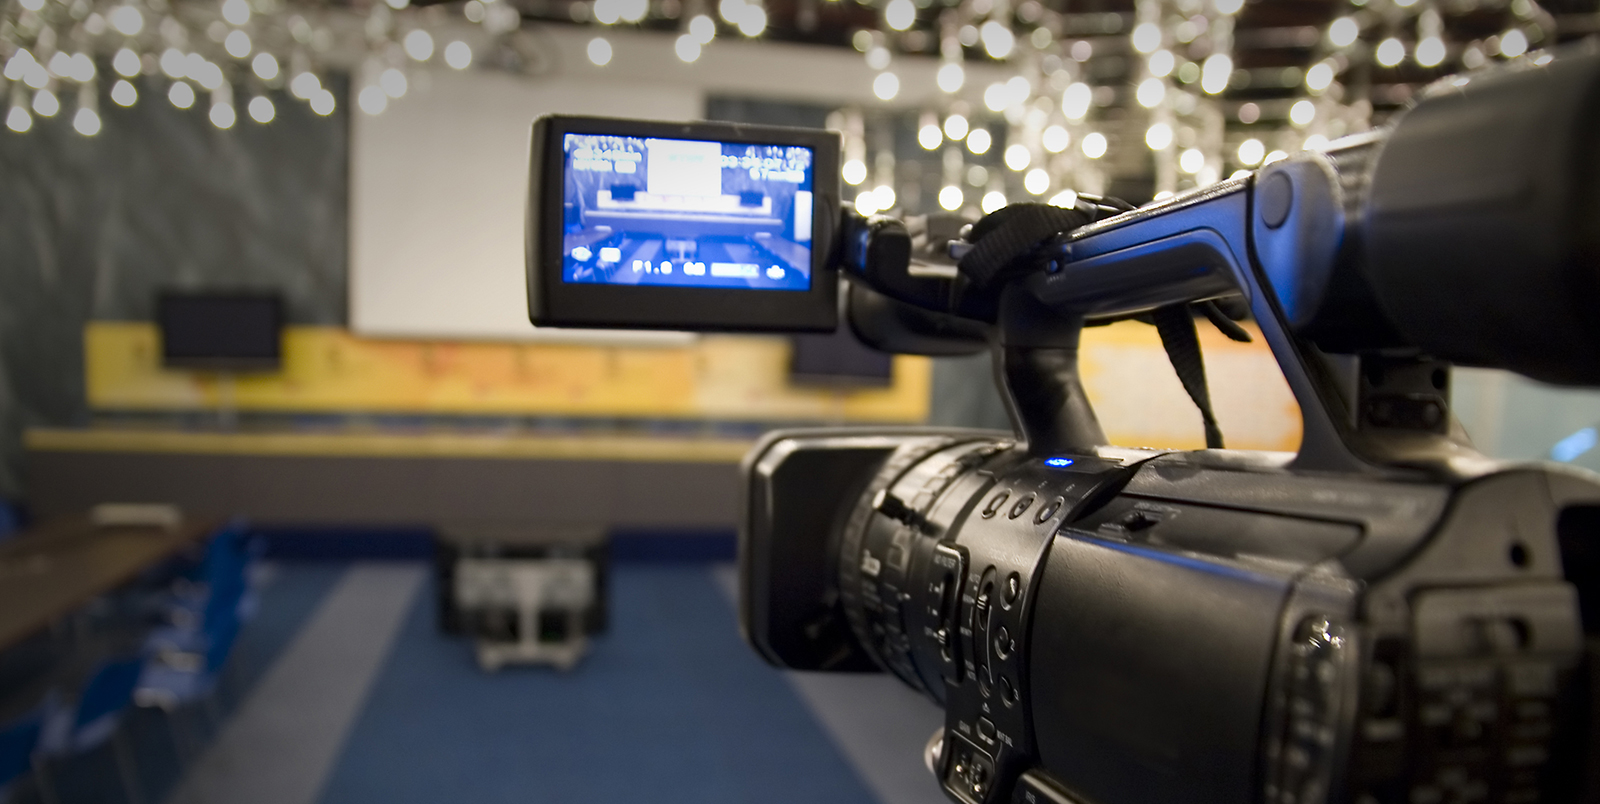 Video-marketing-tips-for-your-business